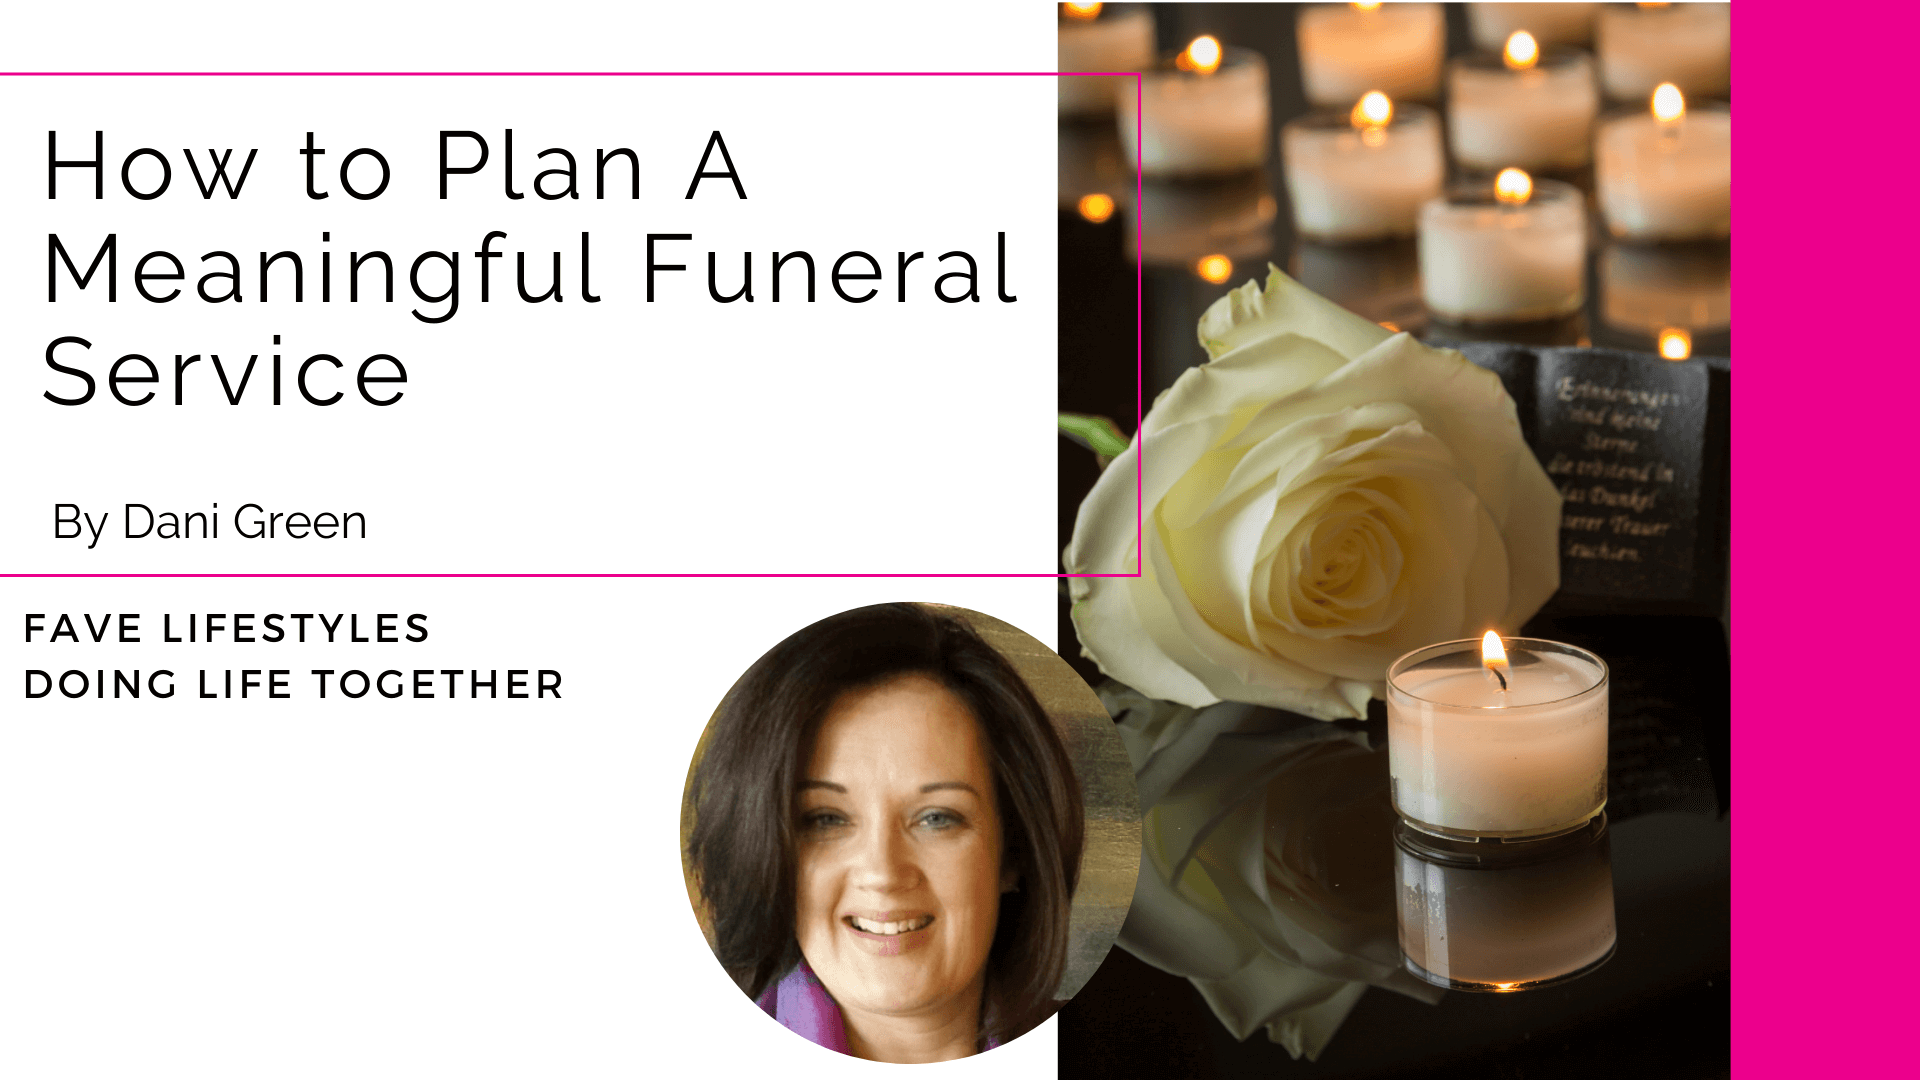 How to Plan A Meaningful Funeral Service